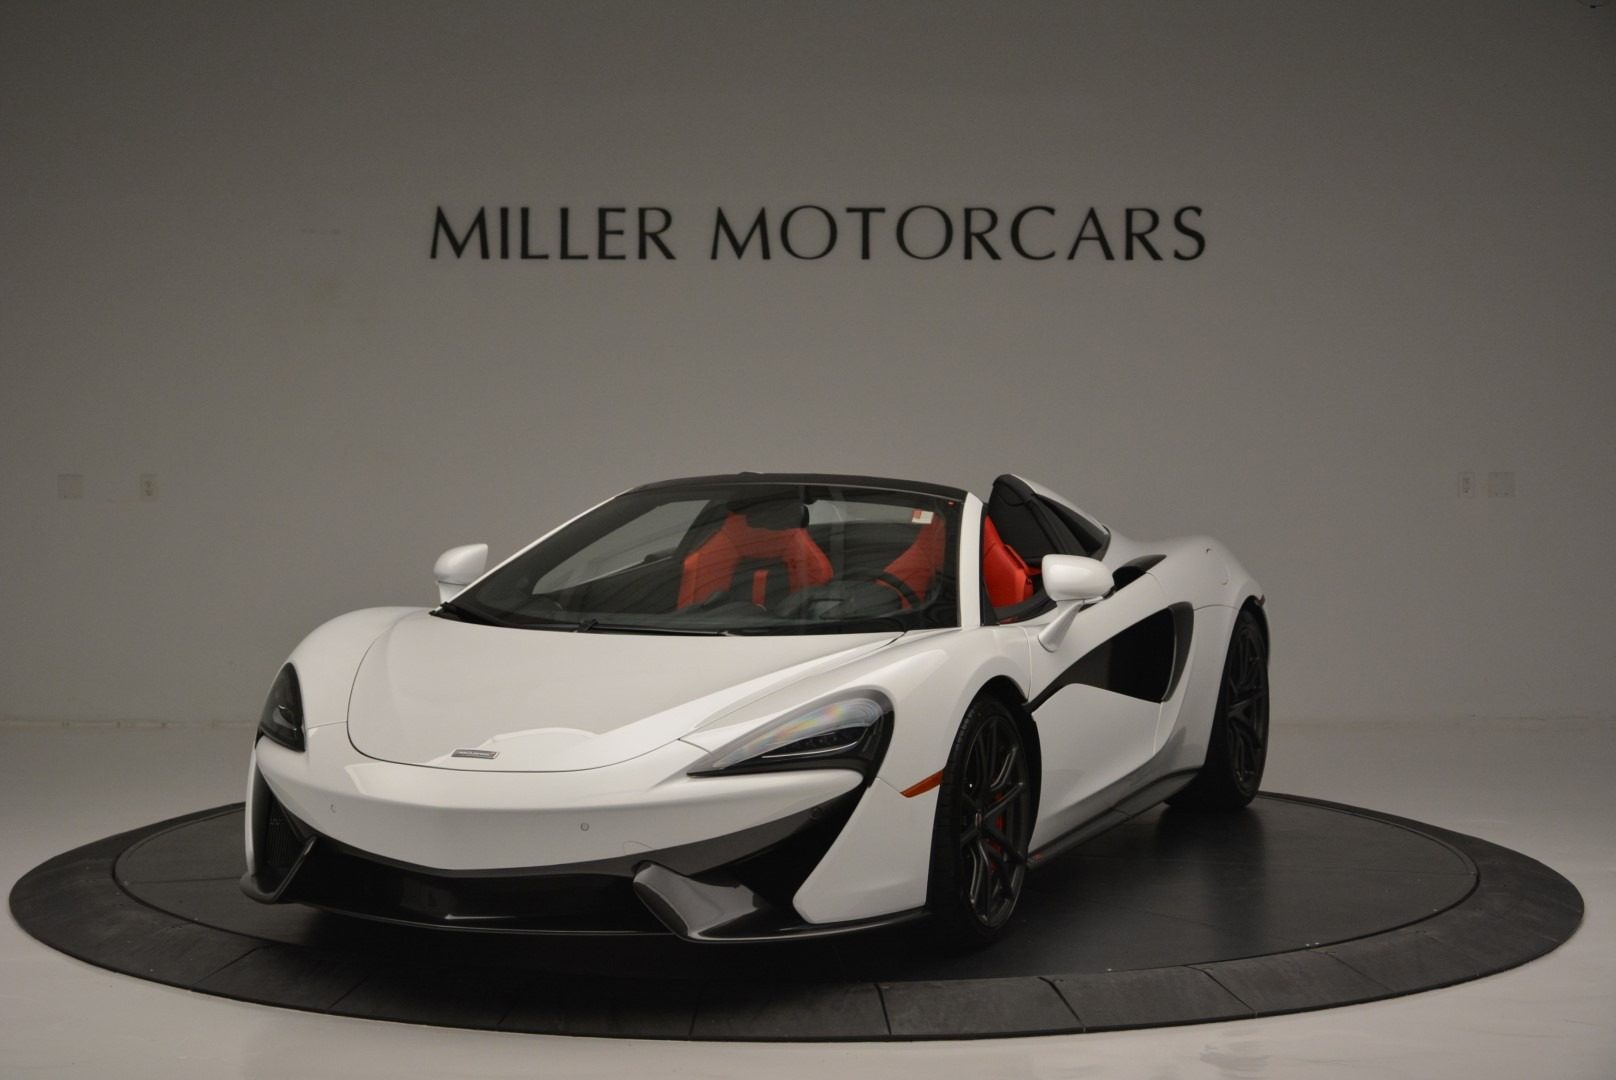 Used 2018 McLaren 570S Spider for sale Sold at Bentley Greenwich in Greenwich CT 06830 1